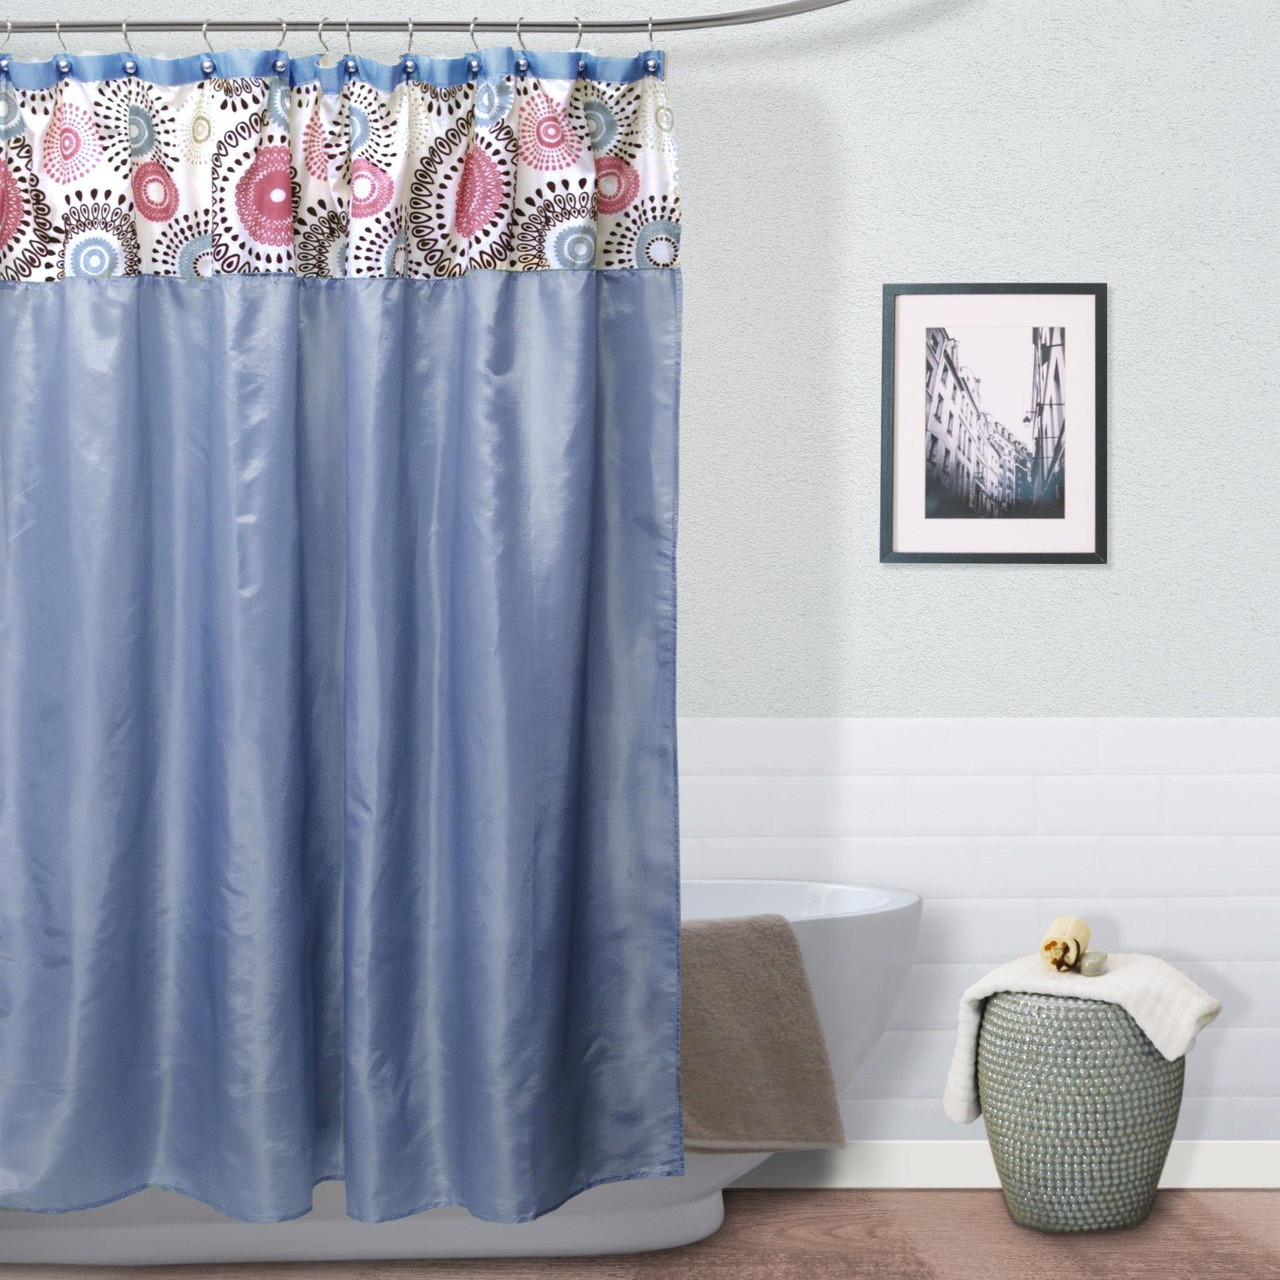 Meghan Fabric Shower Curtain Jointed Teardrops Flocking Top Blue Chocolate Or Burgundy